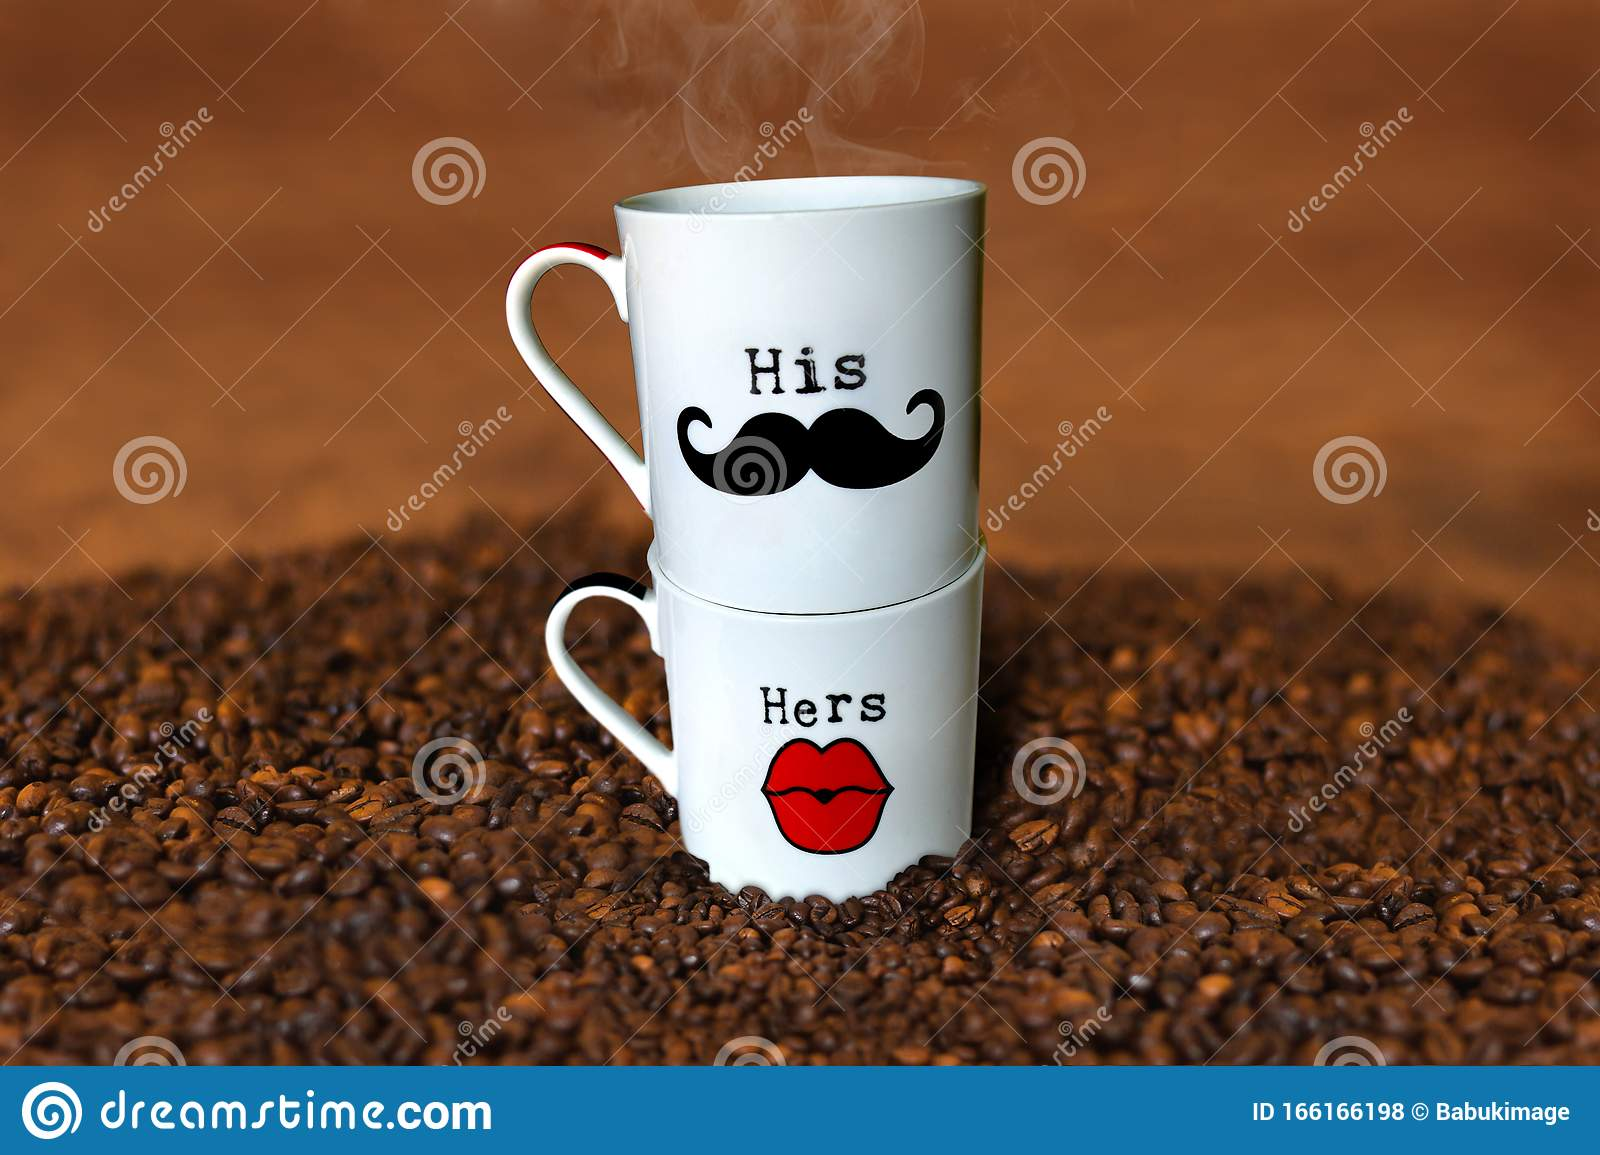 His And Hers Personalized Tea Cups On Coffee Seed Background Mugs Weeding Gift Ideas Stock Photo Image Of Beautiful Couple 166166198